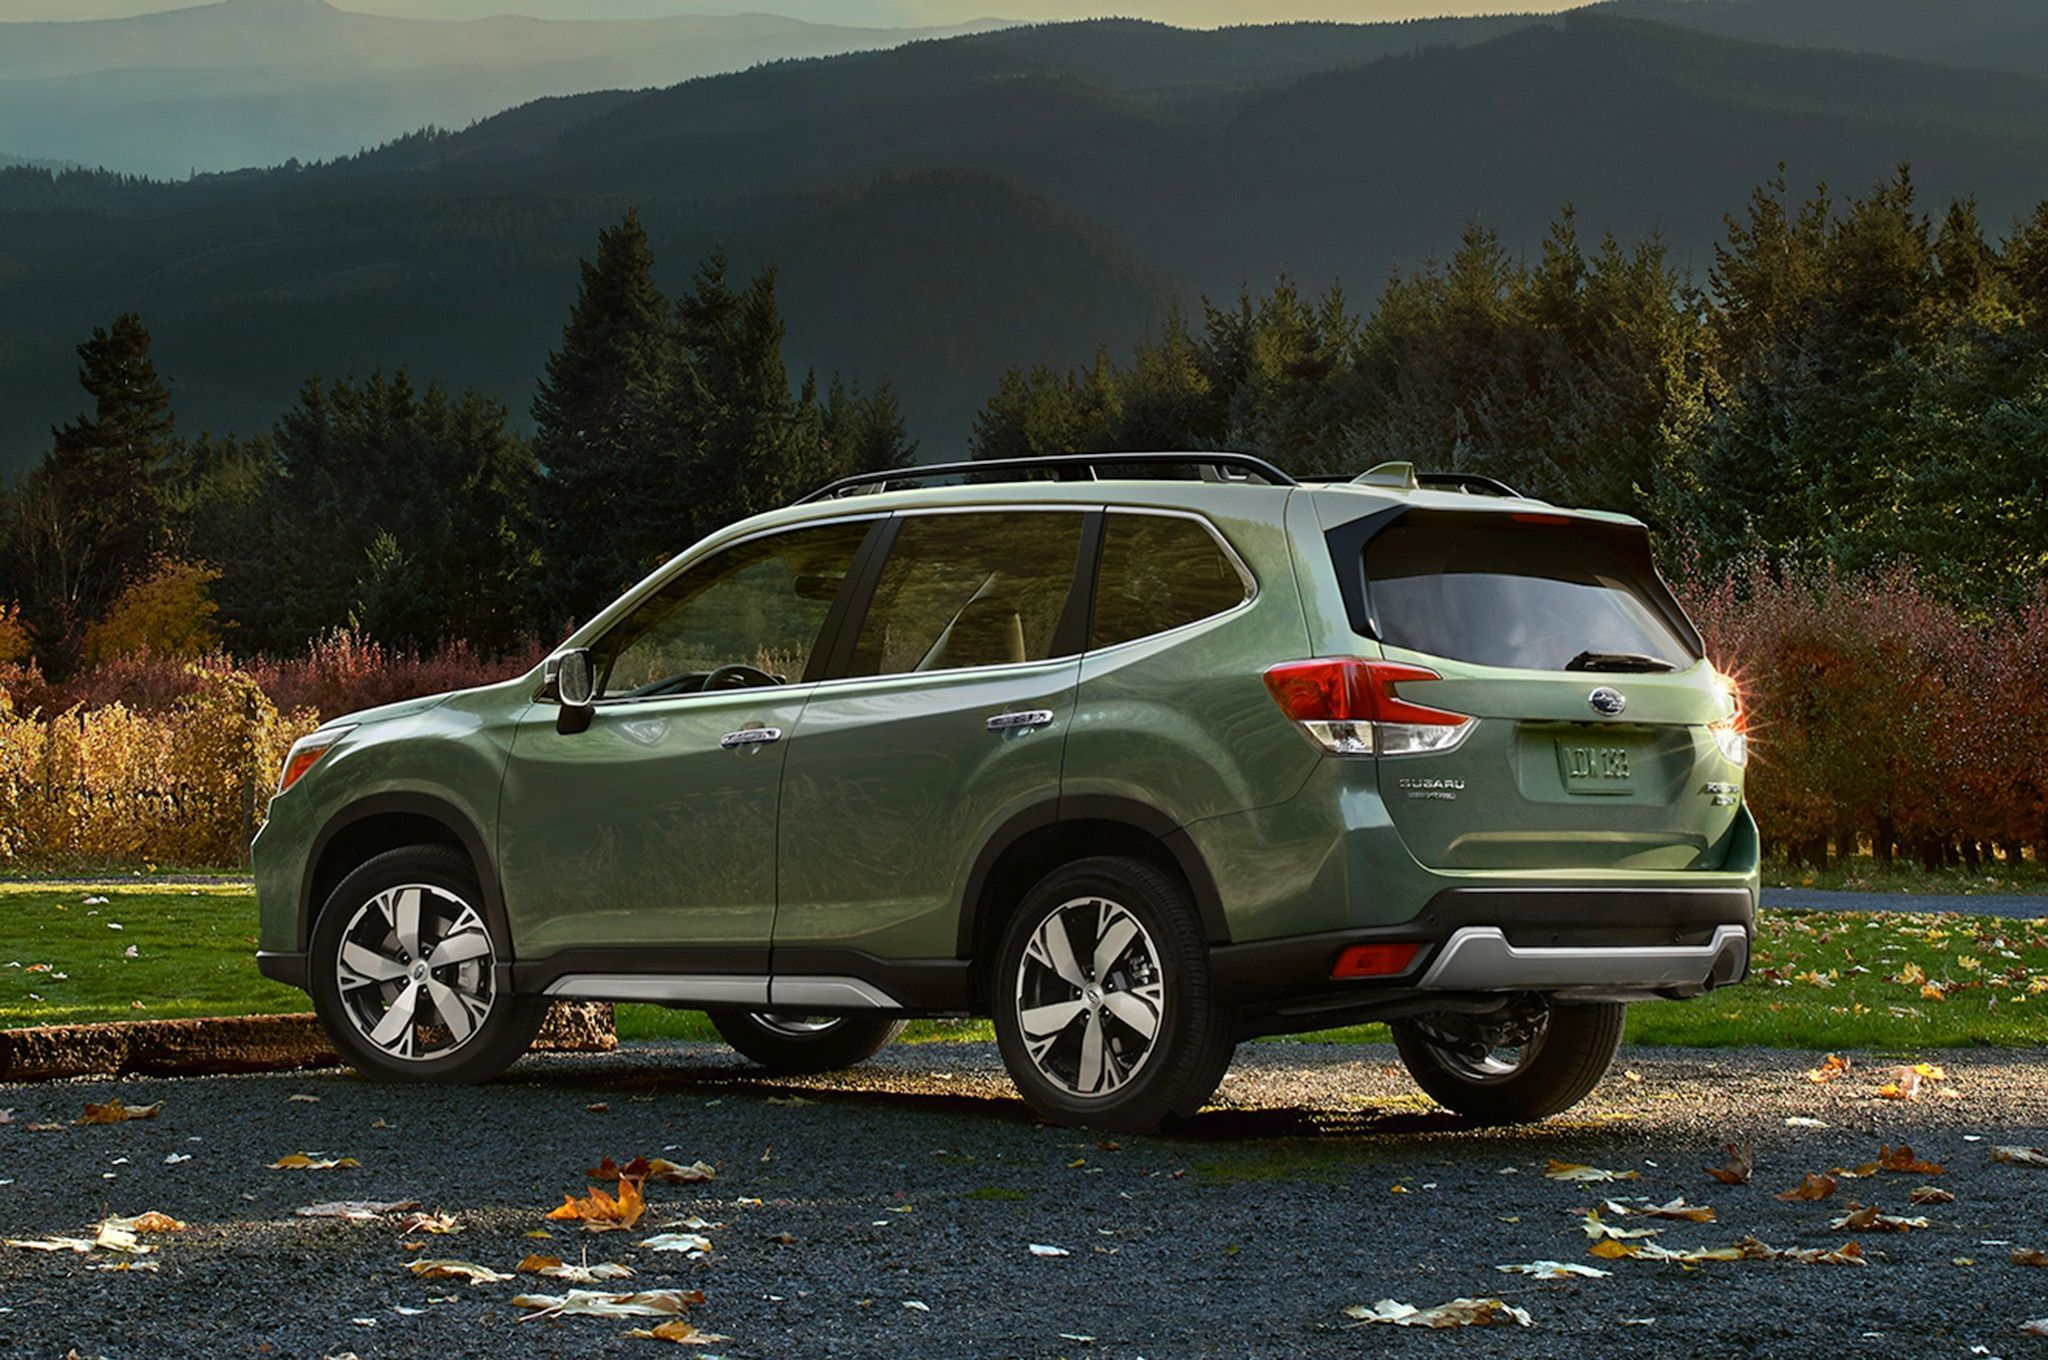 2020 Subaru Forester Jasmine Green First Drive In 2020 Subaru Forester Subaru Xt Subaru